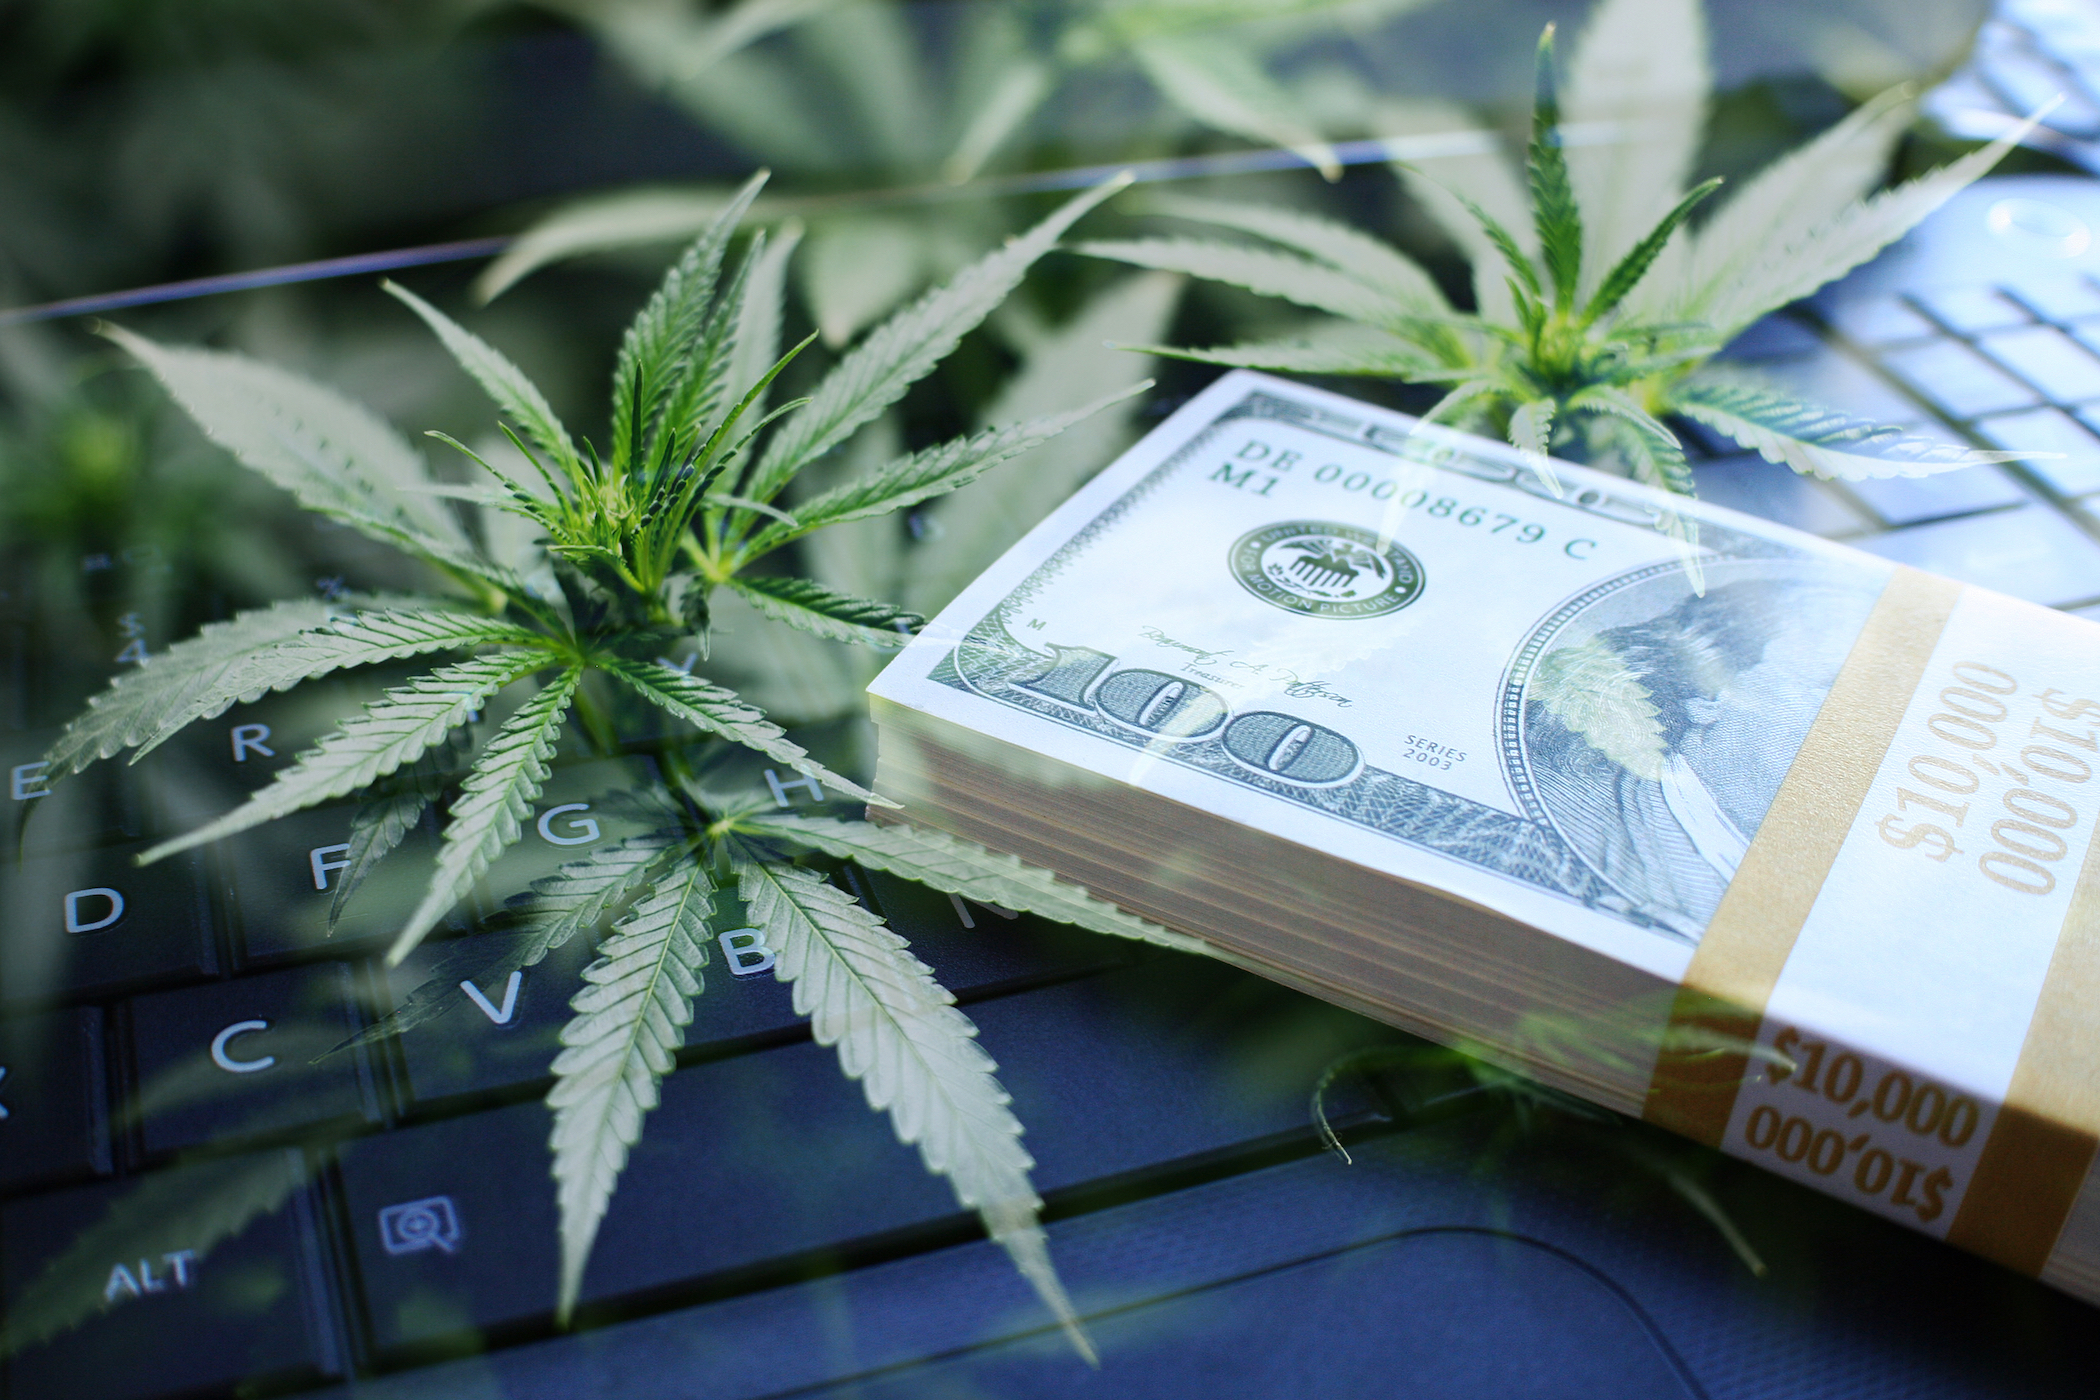 The budding business of cannabis - Media Friendly's sister company Seriously Fun Media is dedicated to connecting business owner and entrepreneurs in the cannabis, hemp and medical marijuana fields.